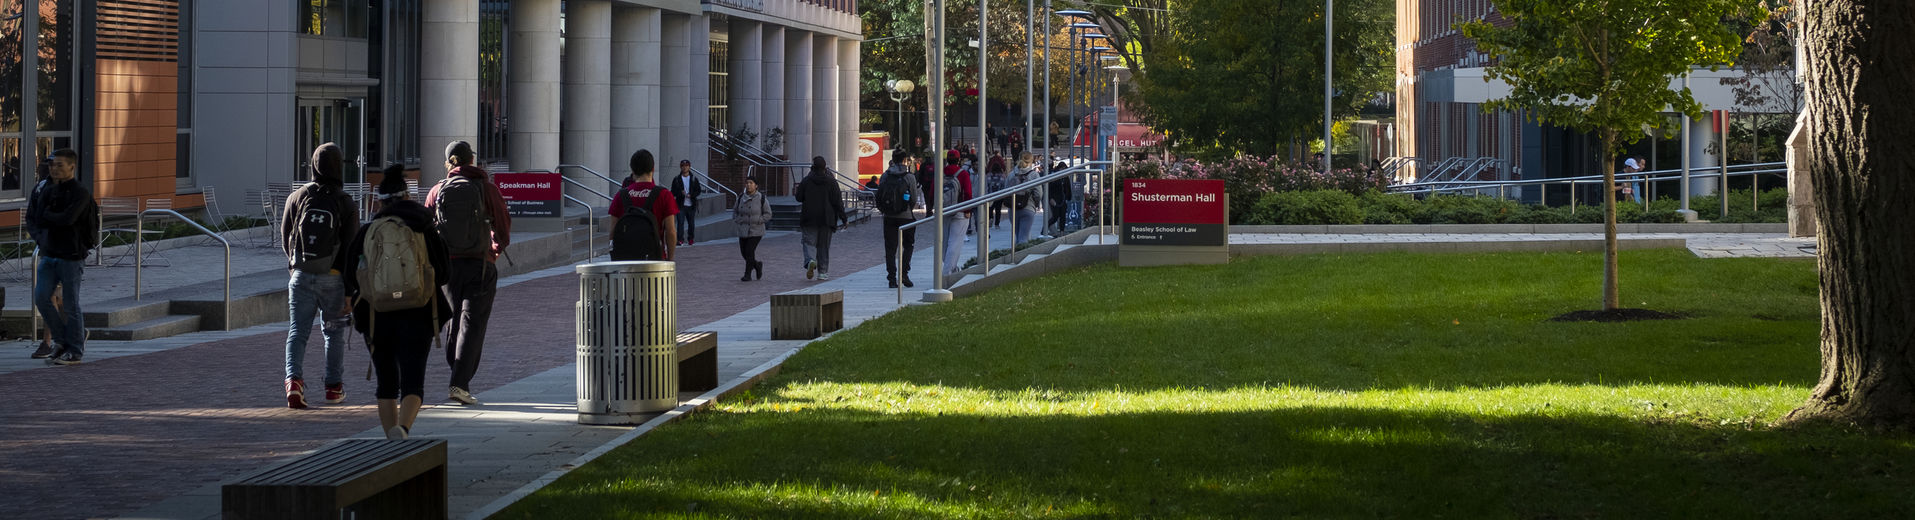 students walking on main campus